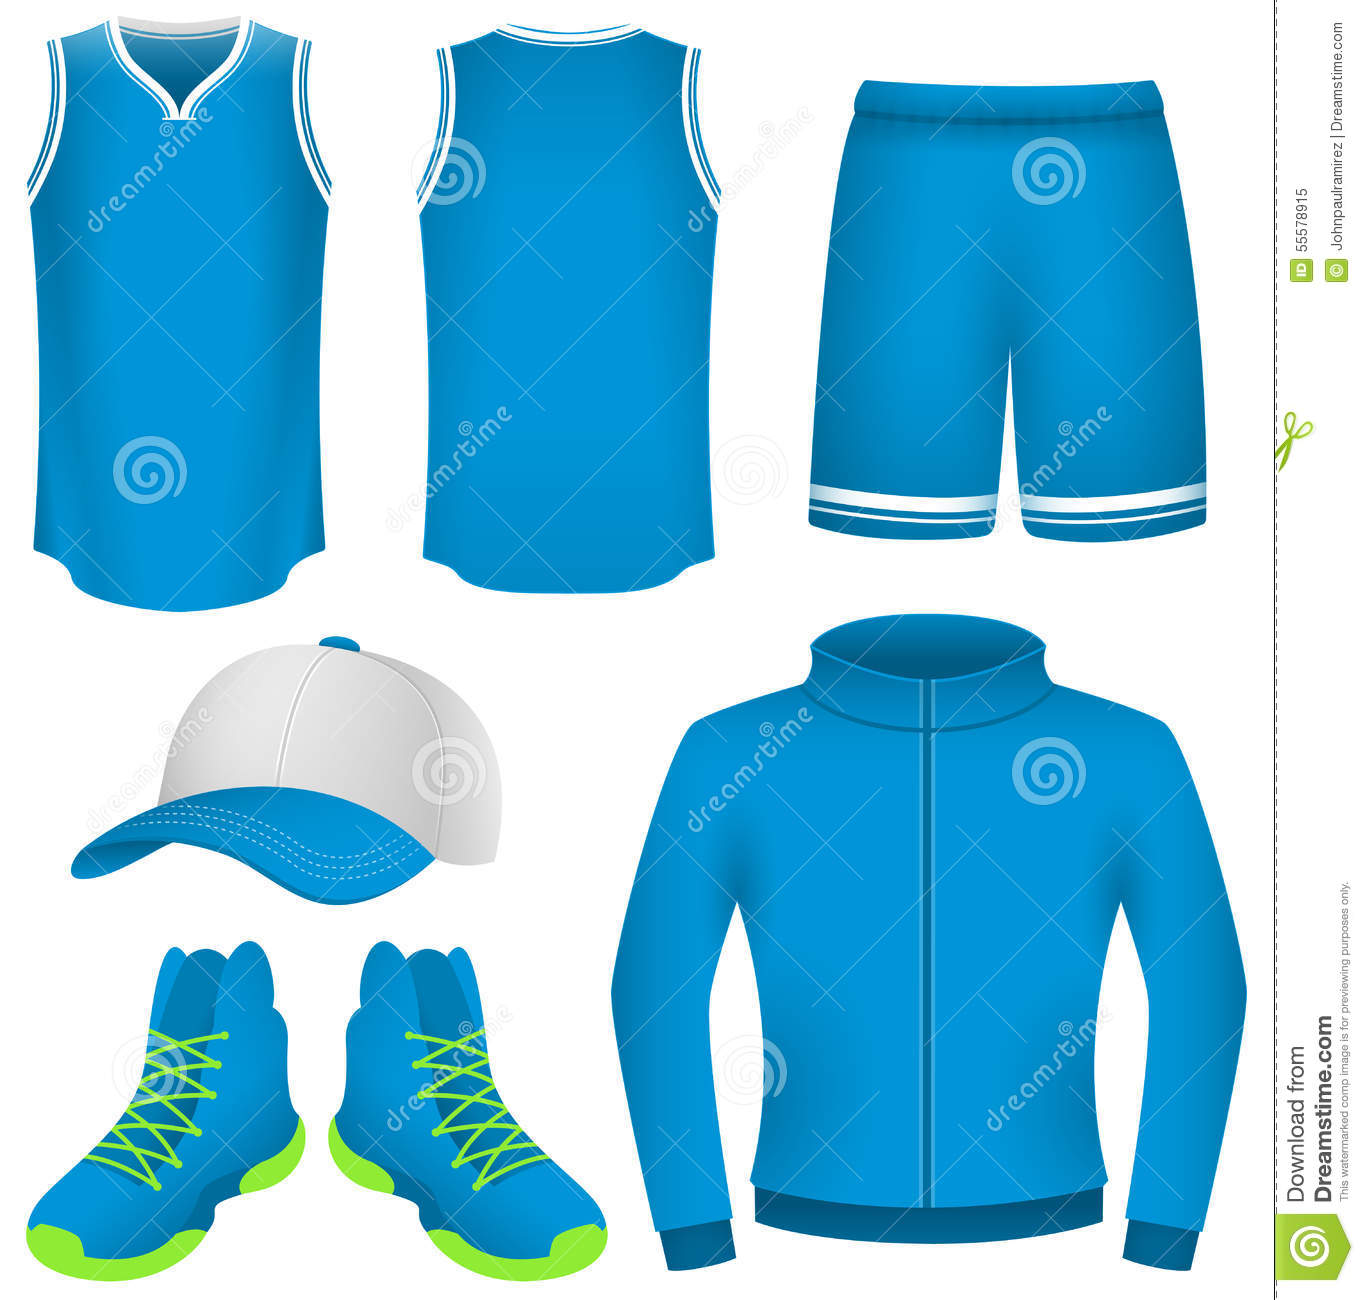 Sports Wear Clipart